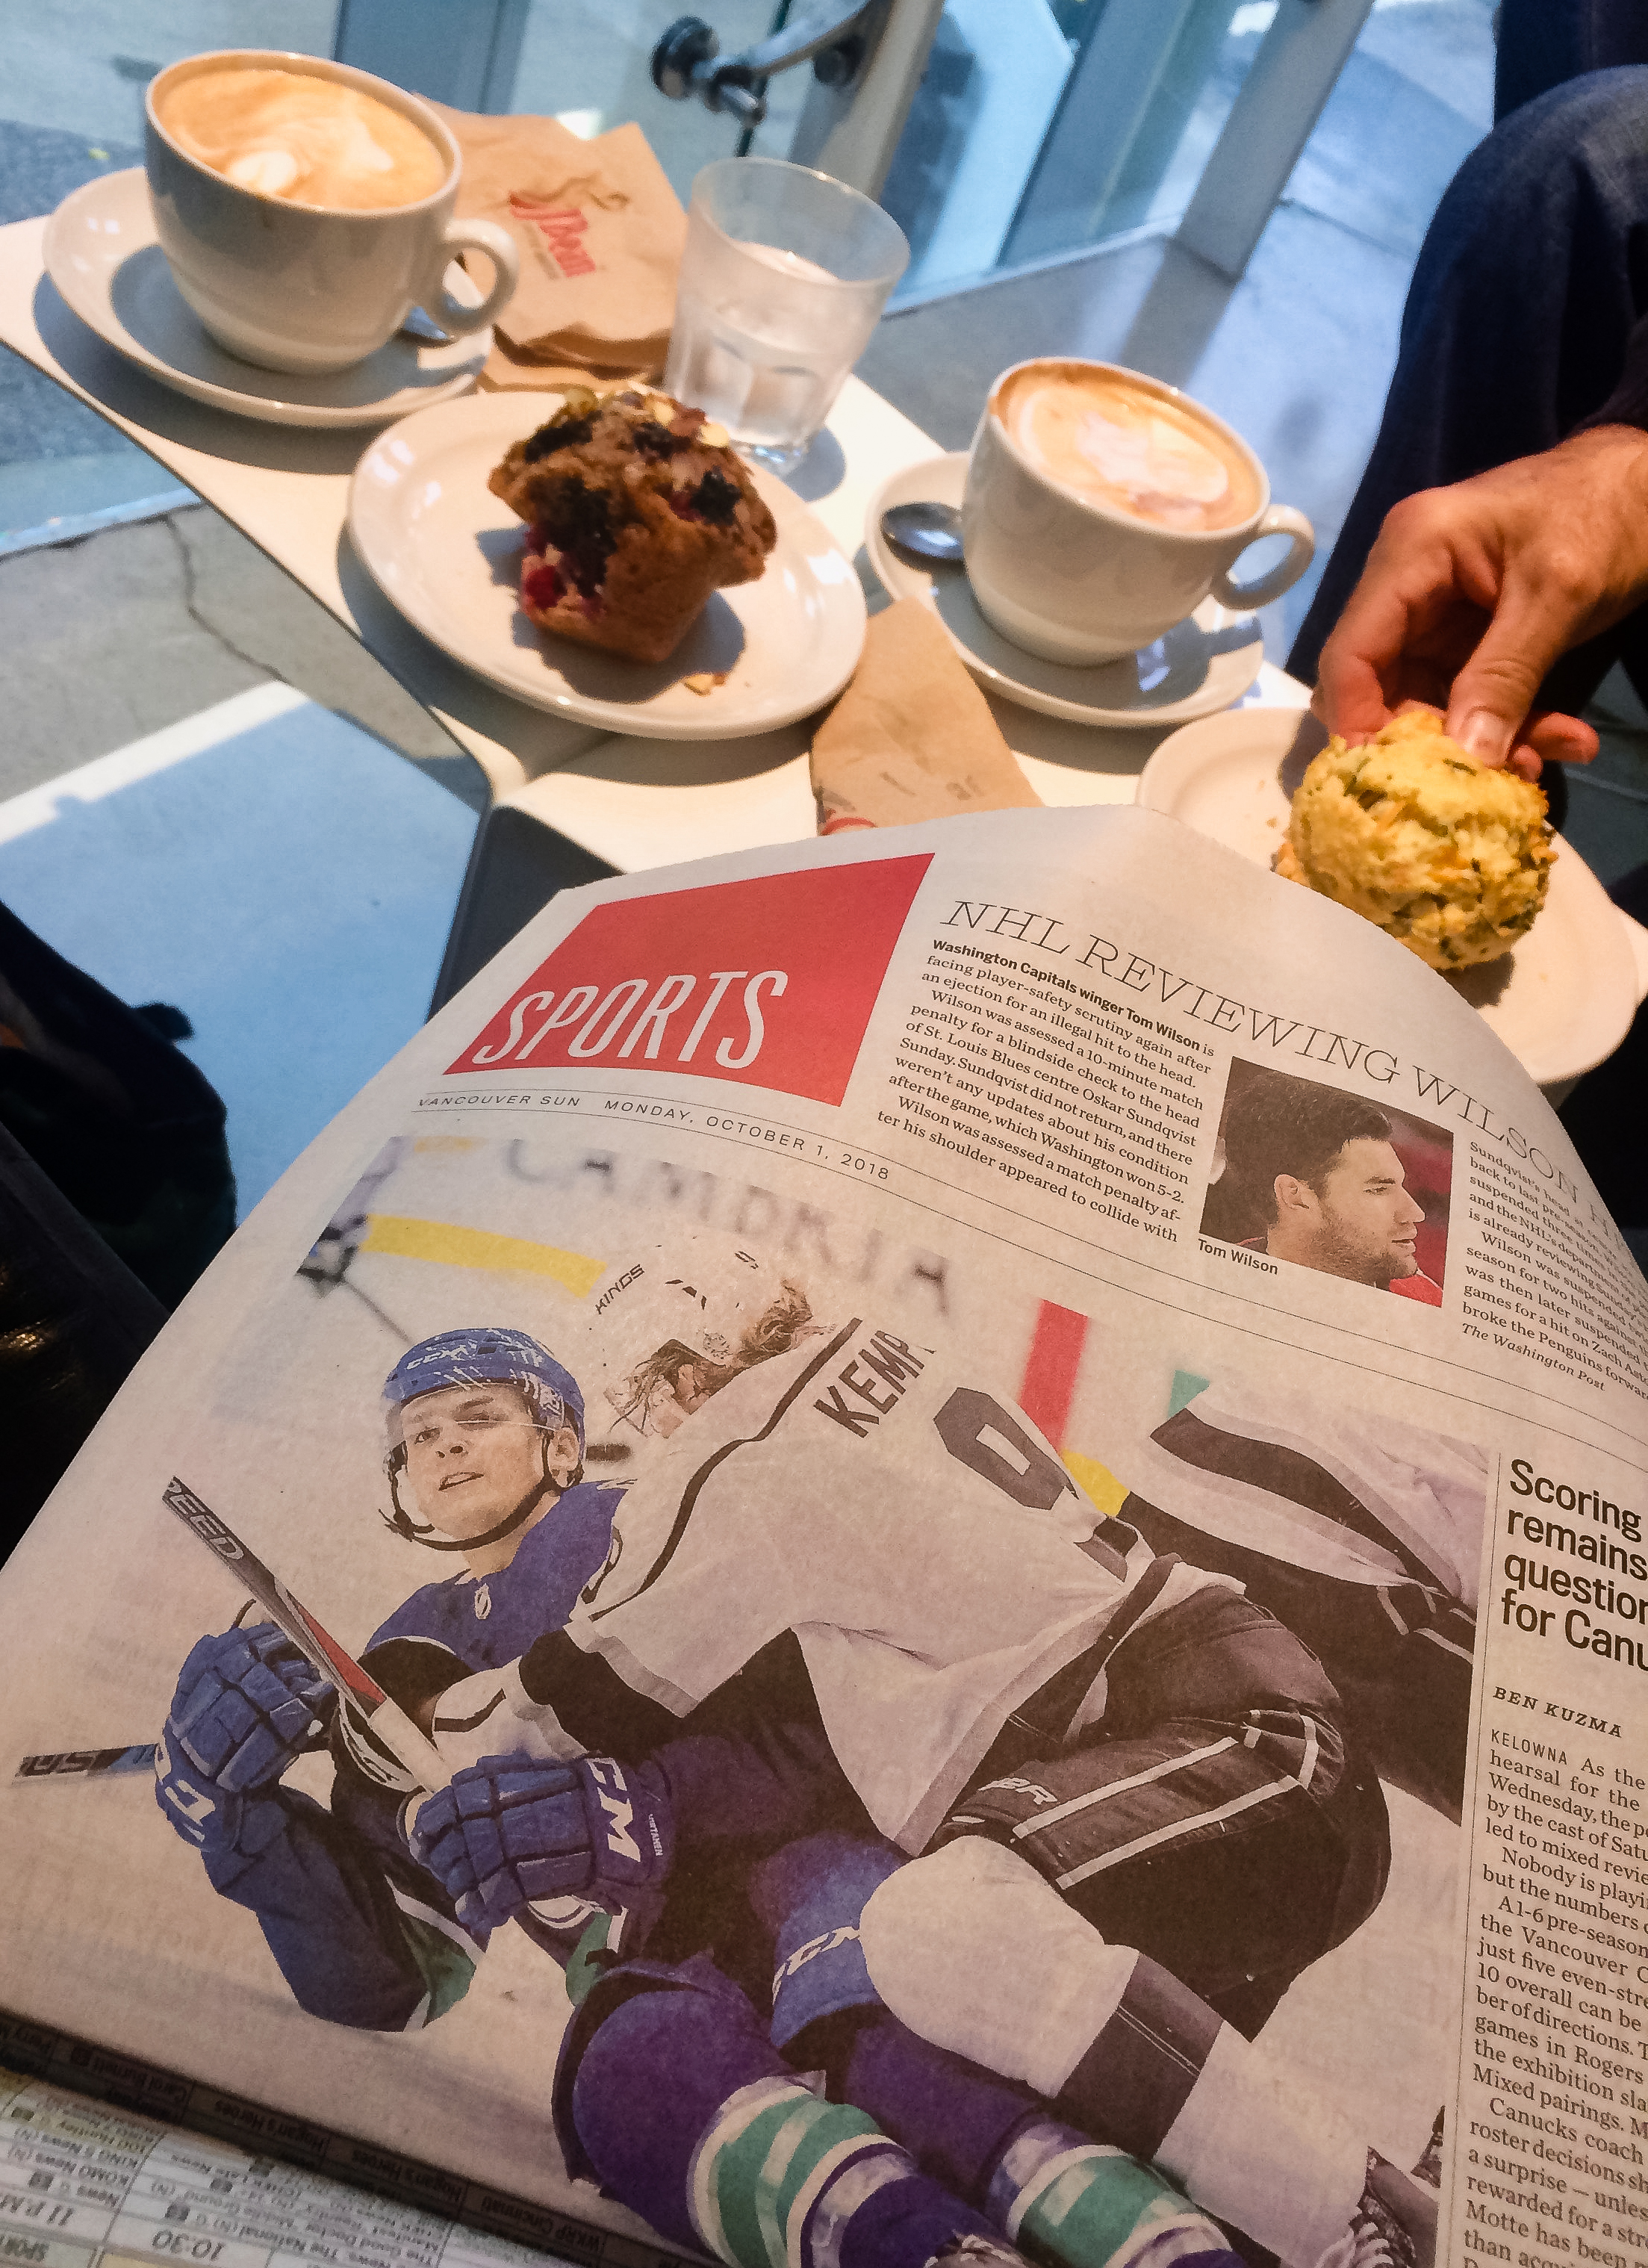 You know you are having breakfast in Canada when Hockey rules morning news.